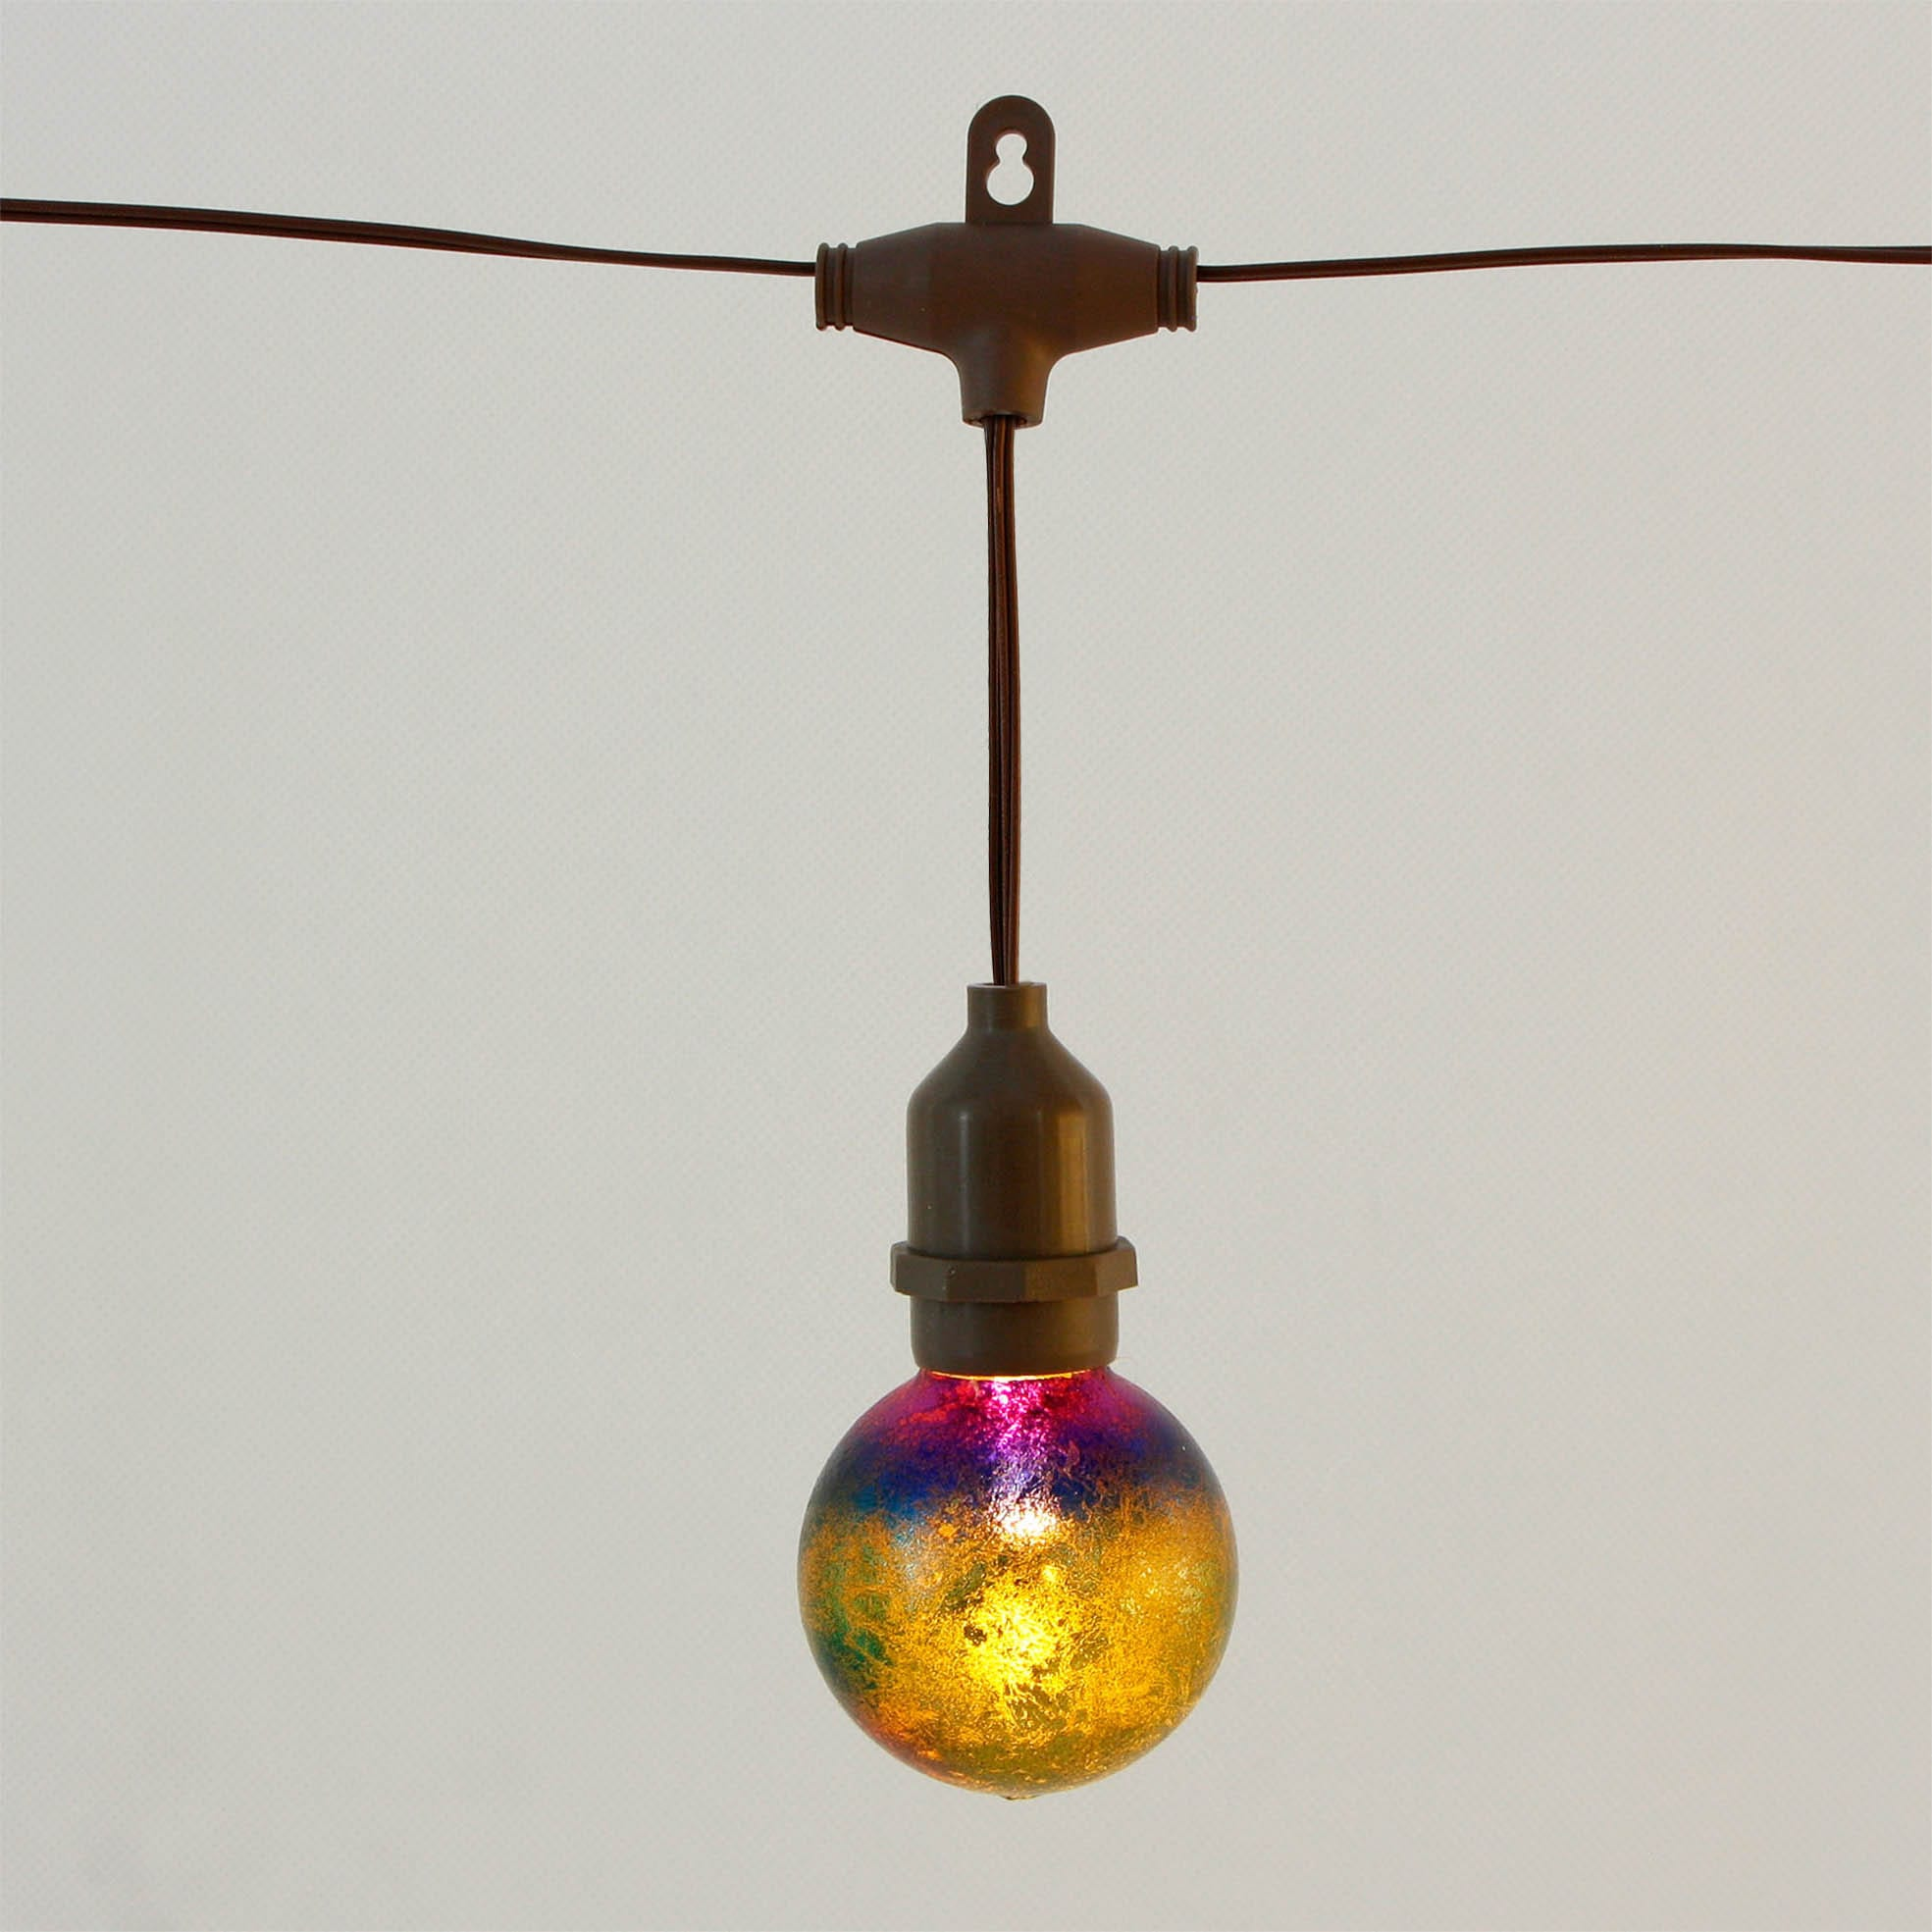 Iridescence Glass Umbrella String Lights Solar KF09063-SO Featured Image